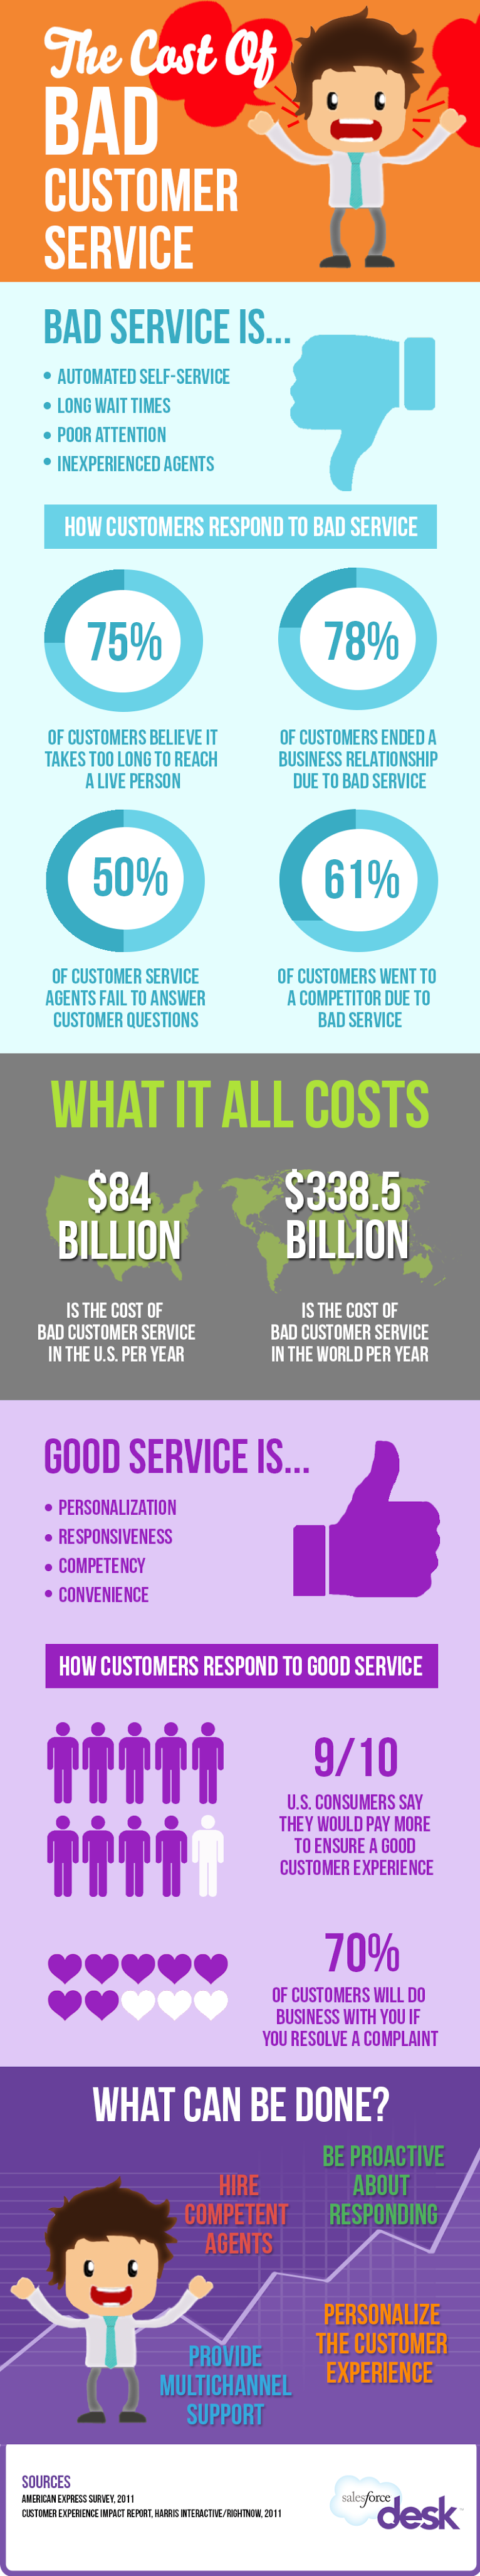 The real cost of bad customer service to your business